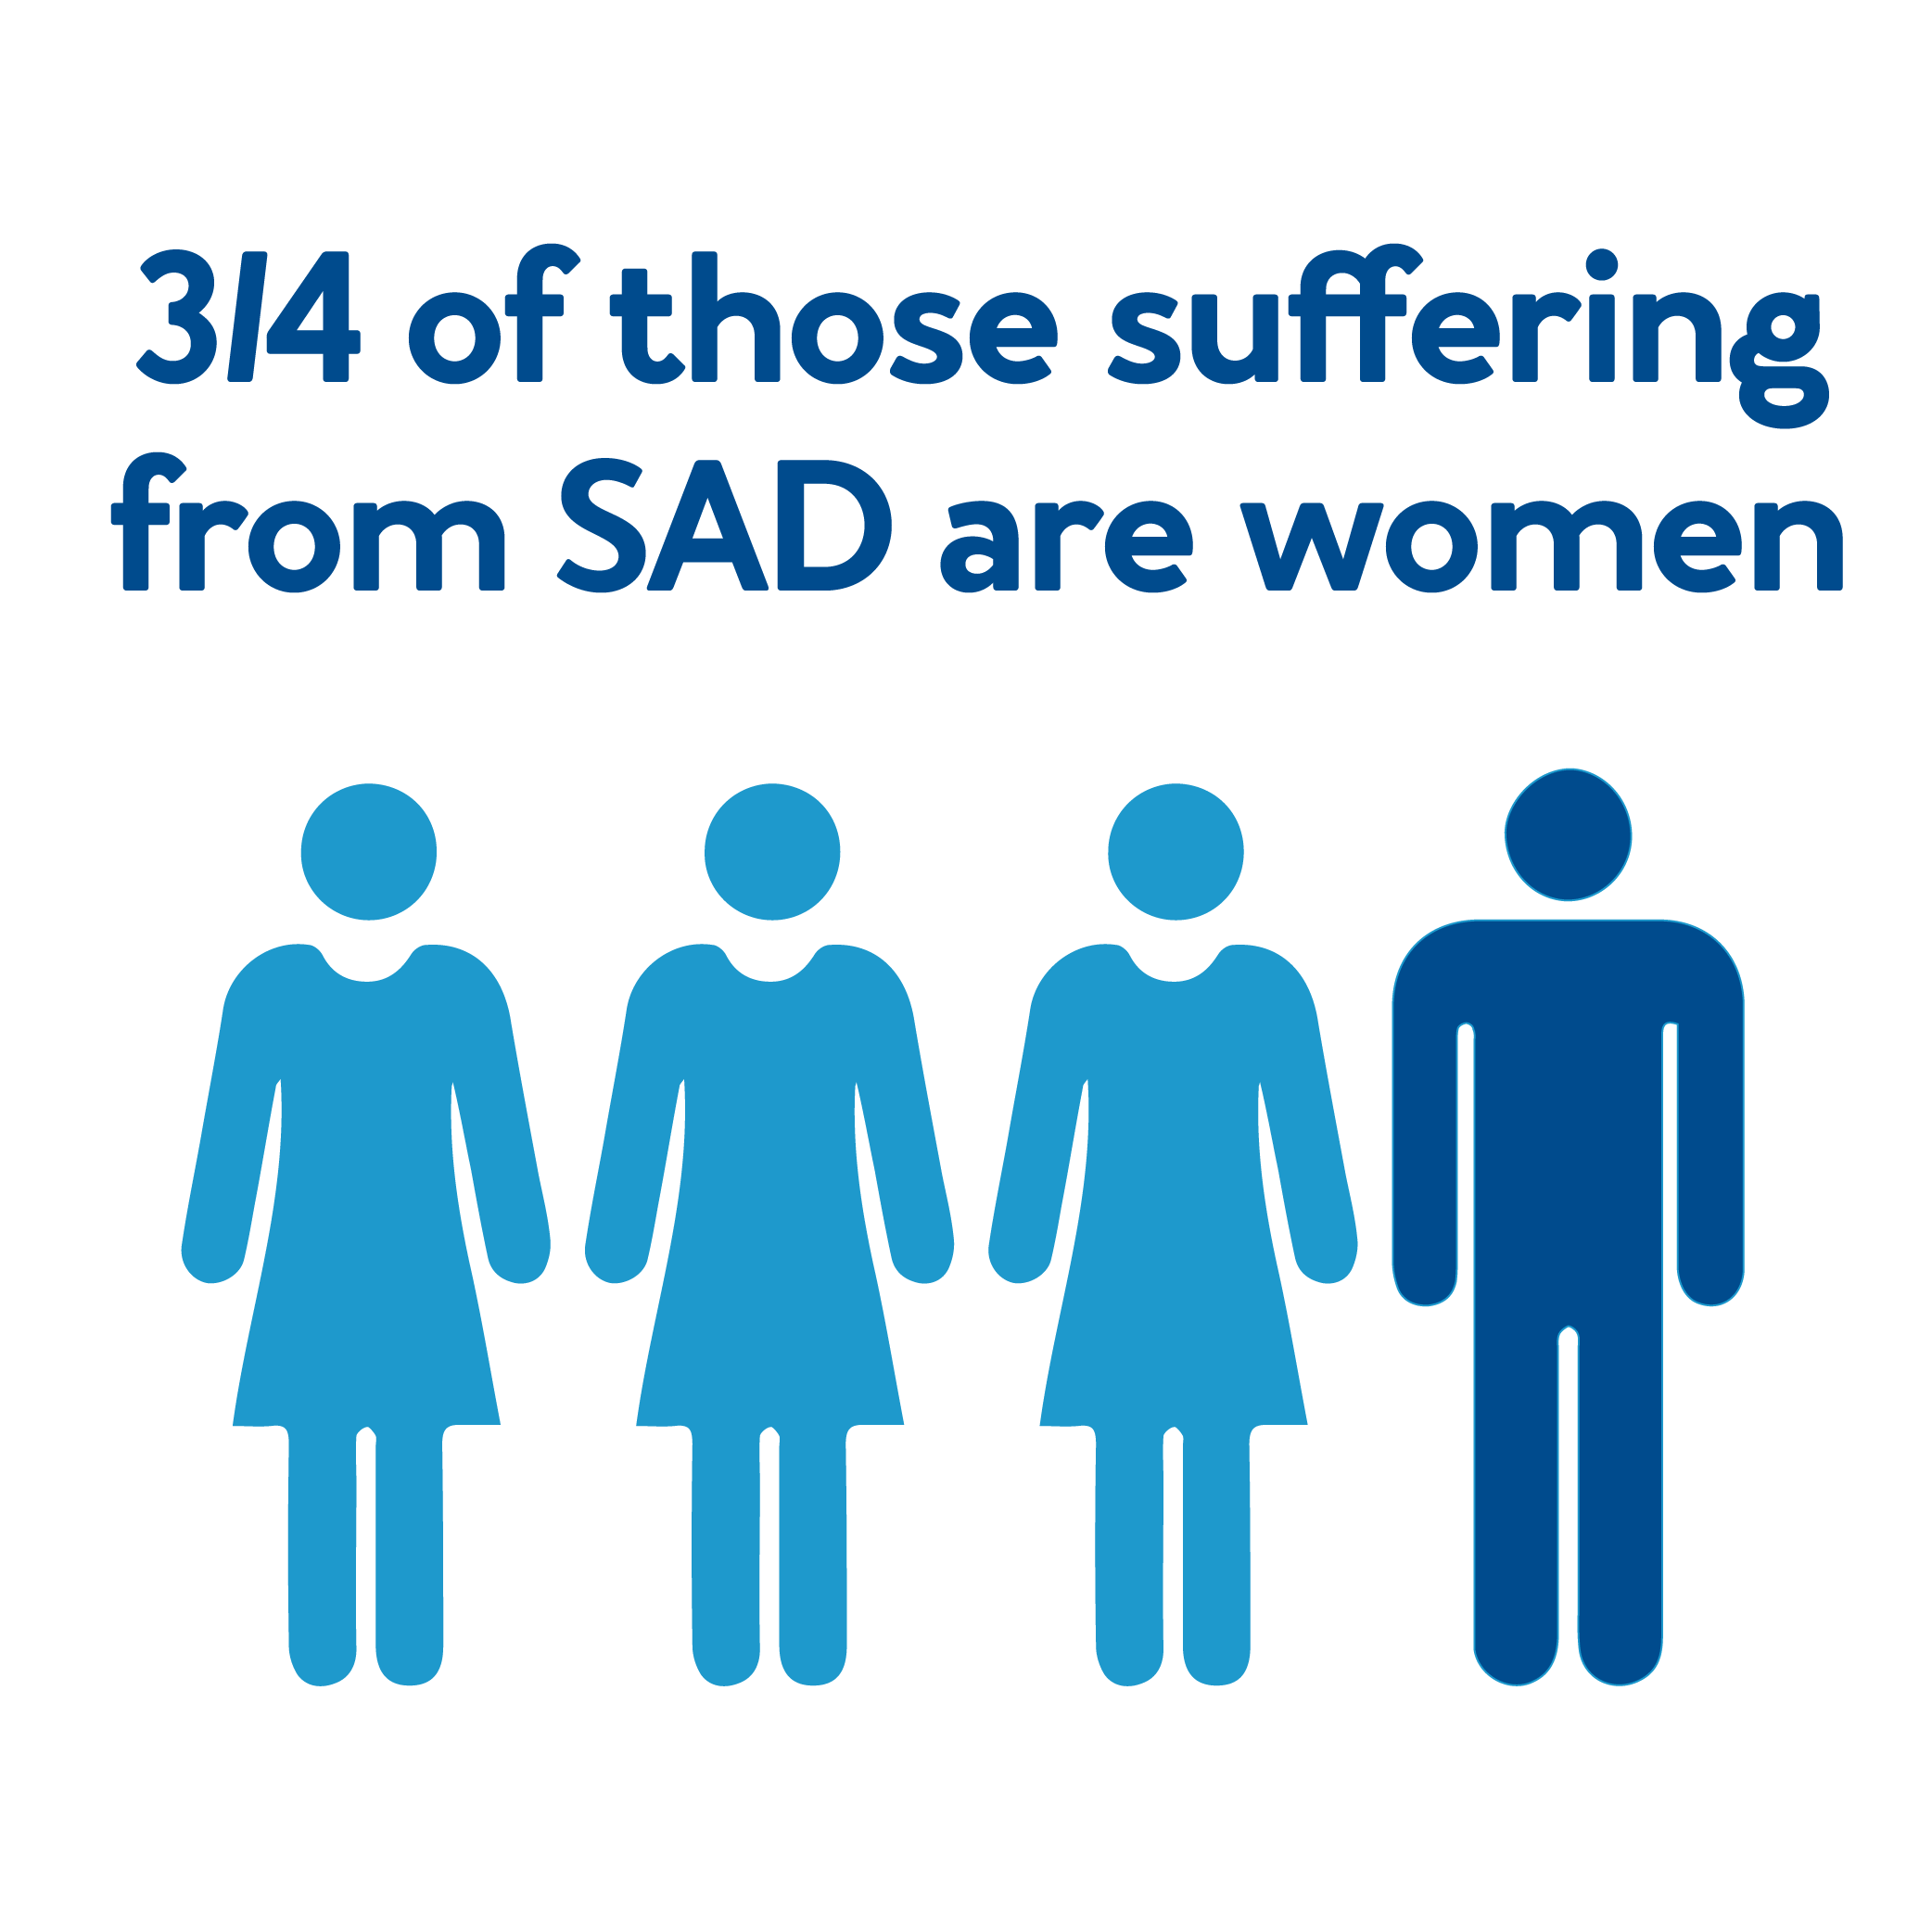 ¾ of those suffering from SAD are women